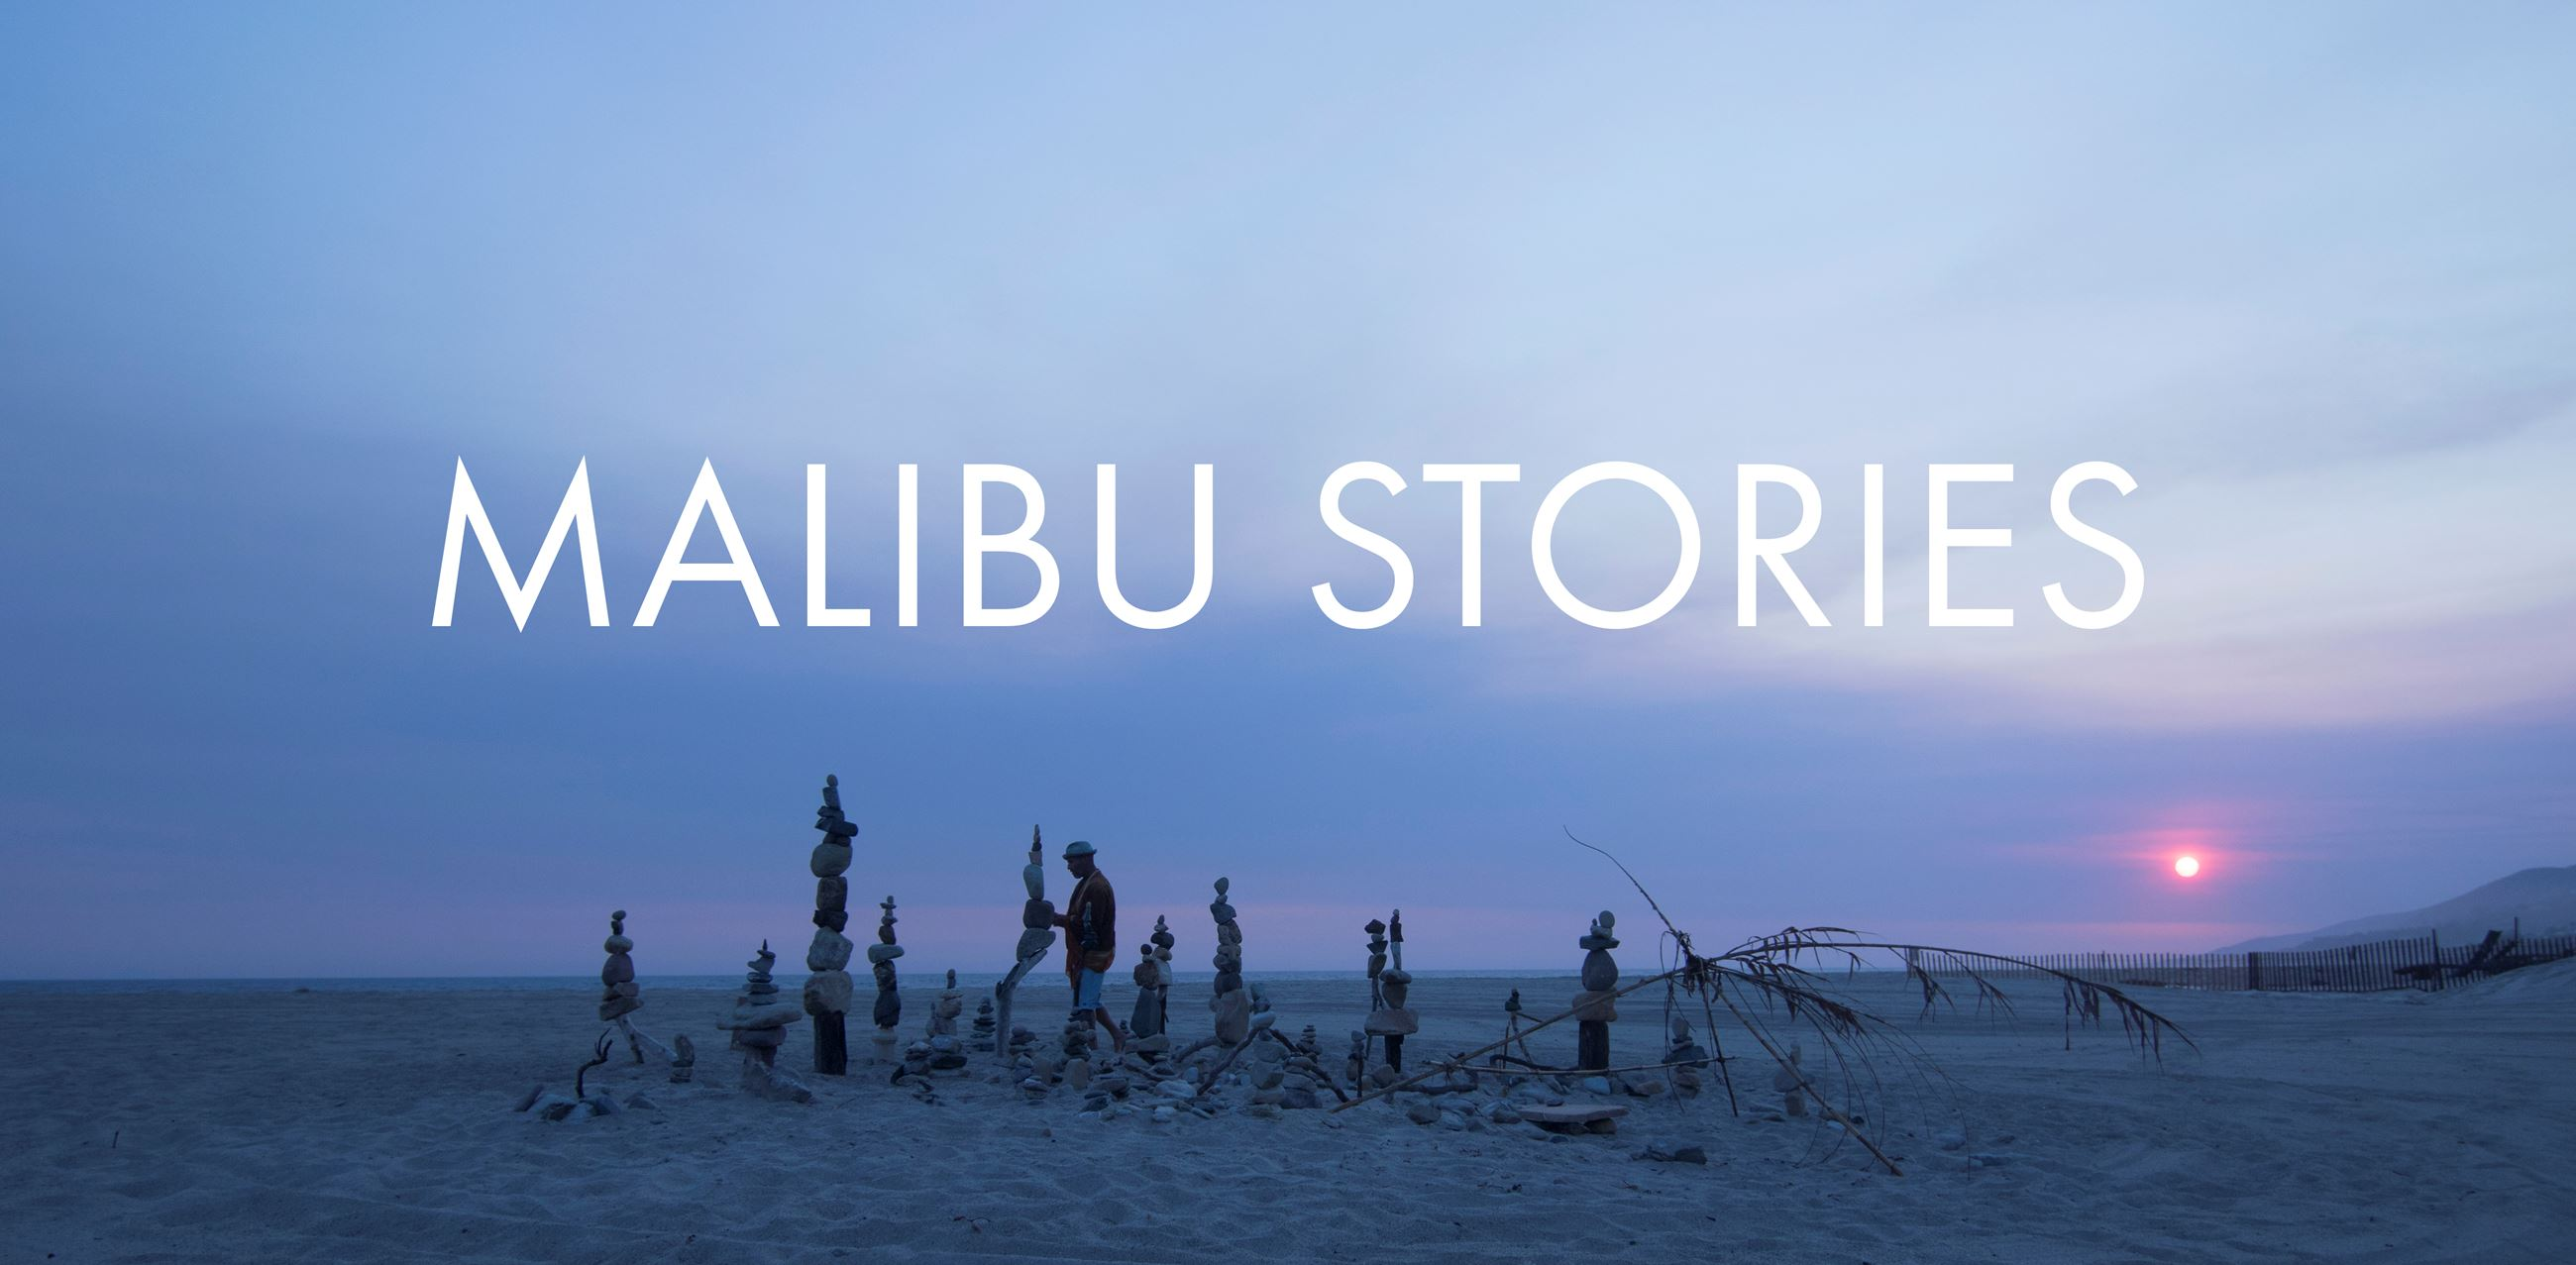 Malibustories-Header